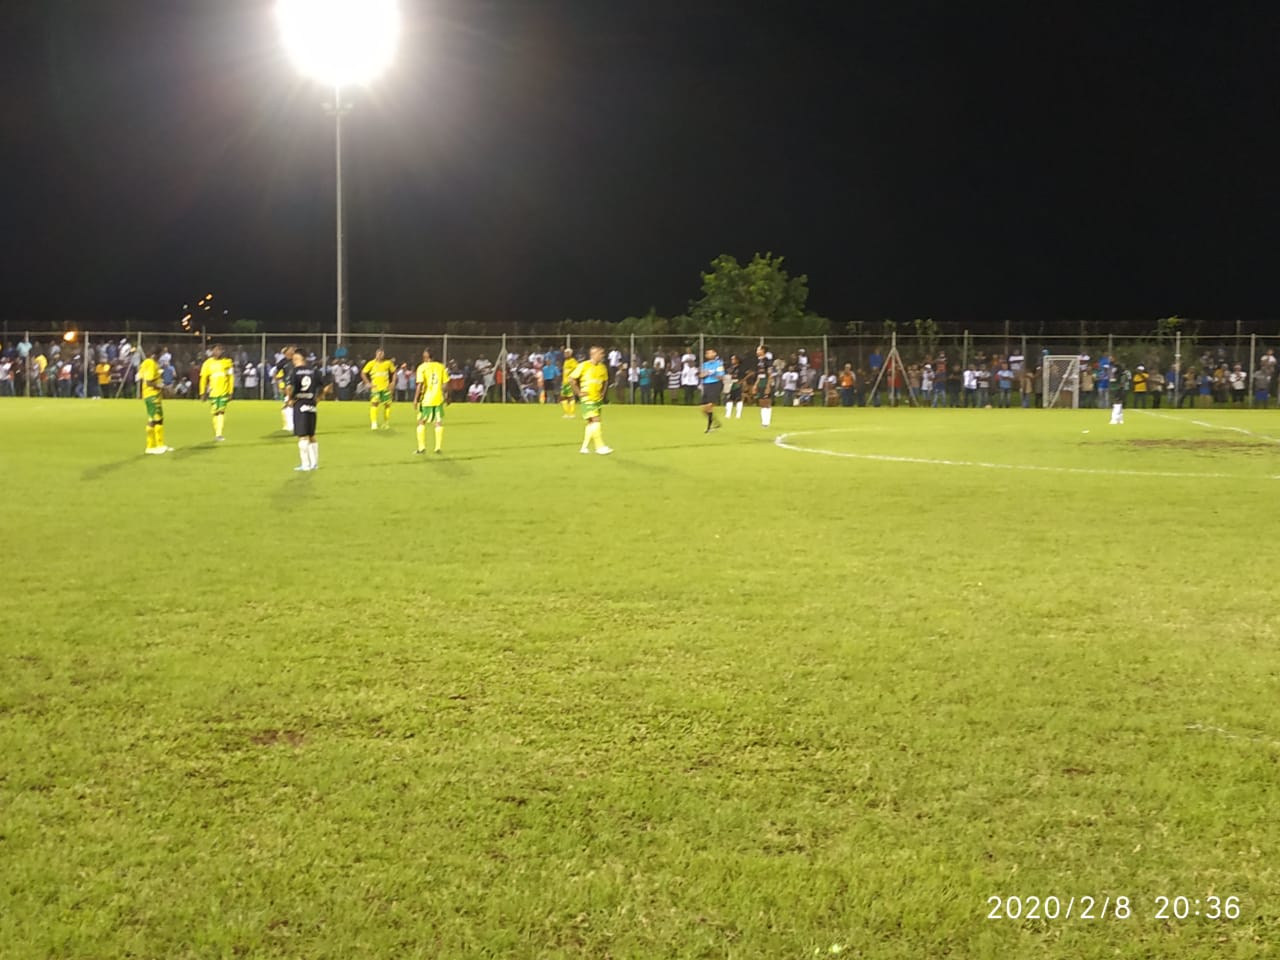 Derby franciscain en demi-finale de coupe de Martinique